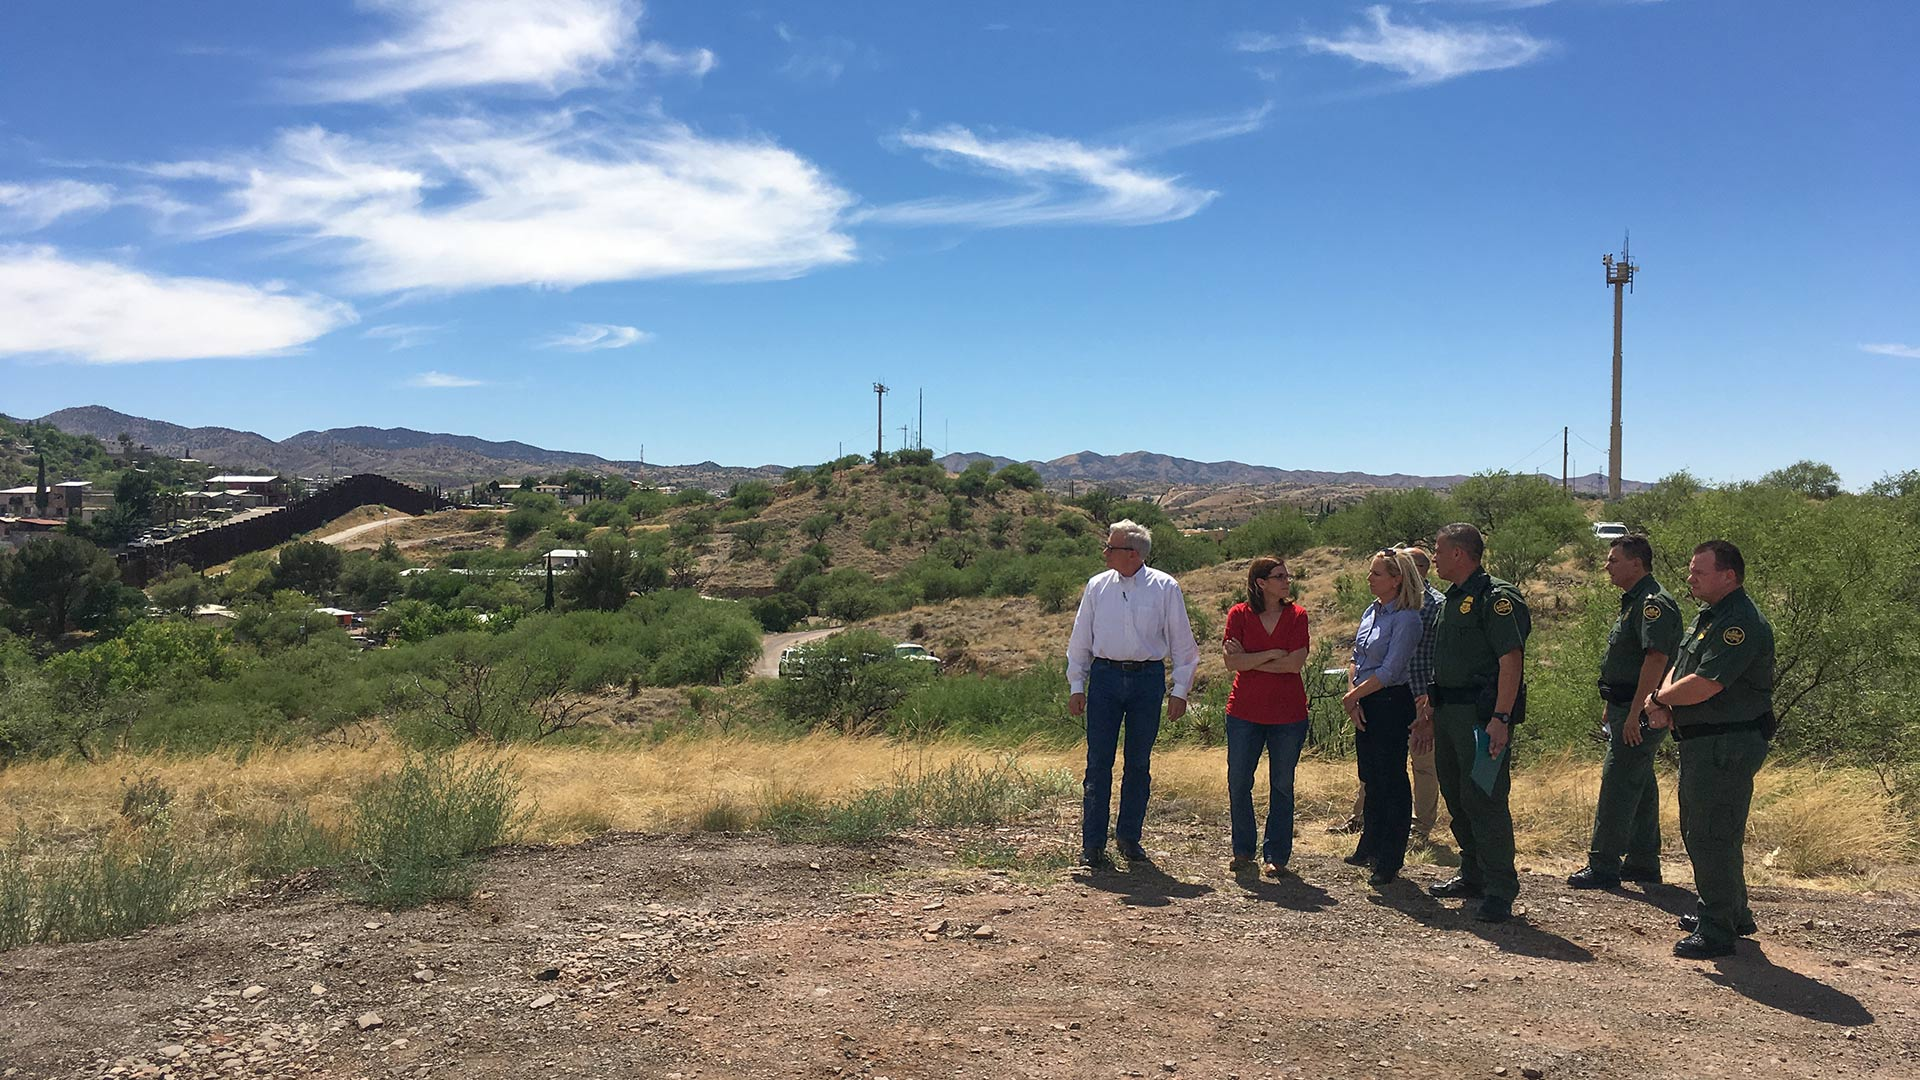 U.S. Reps. David Schweikert and Martha McSally and Homeland Security Secretary Kirstjen Nielsen are joined by  Border Patrol agents at the border fence in Nogales.